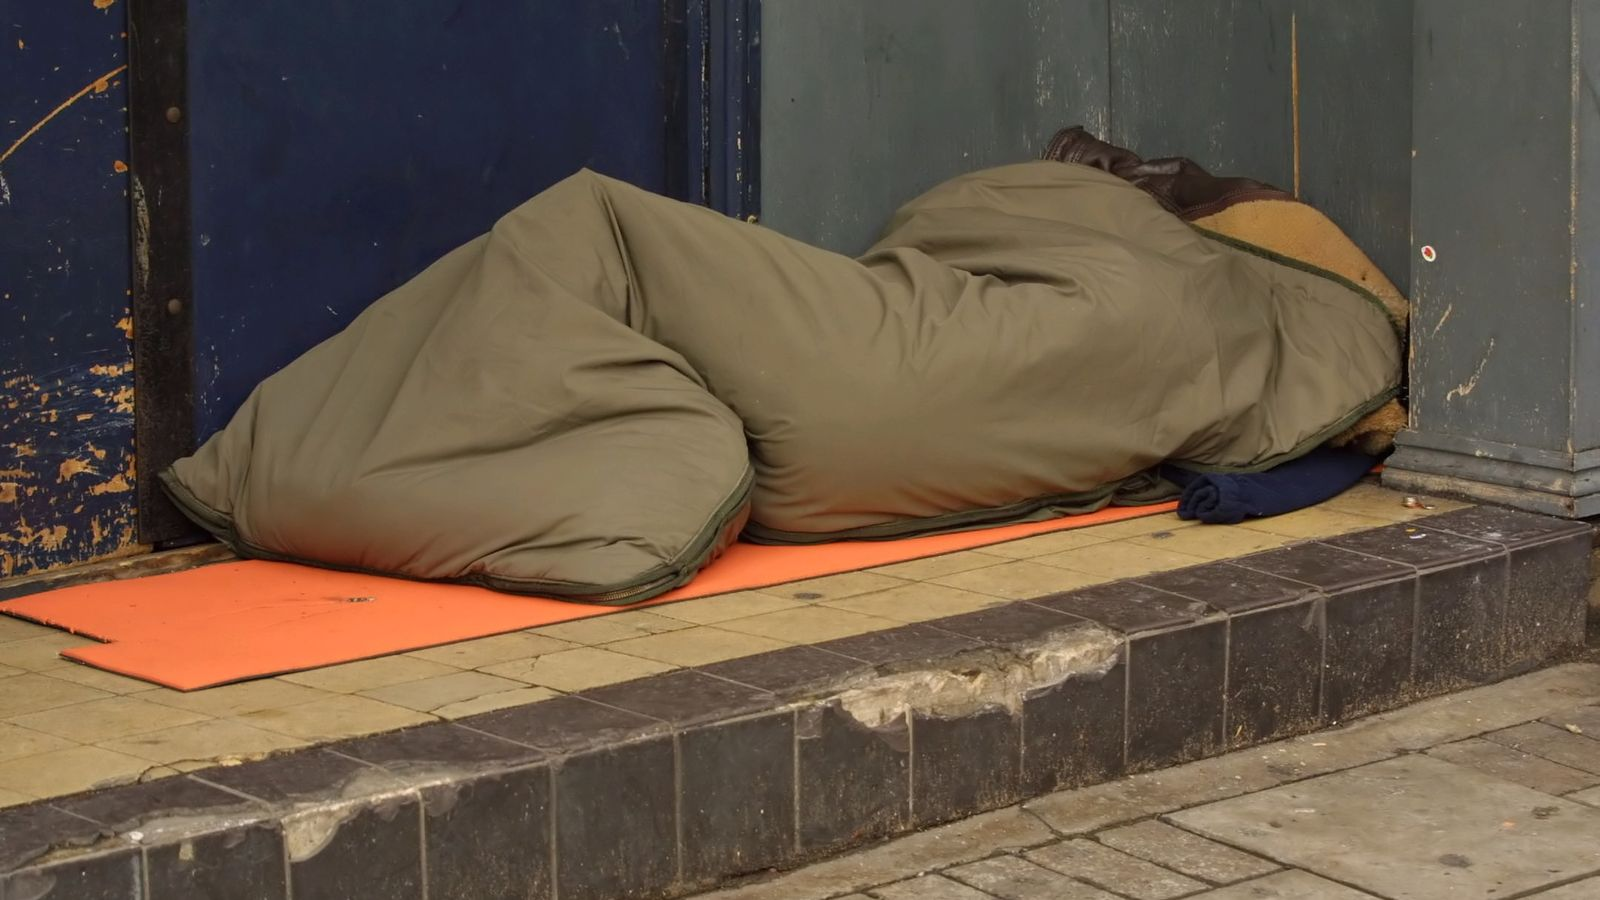 PM's pick for rough sleeping role under fire over homelessness comments